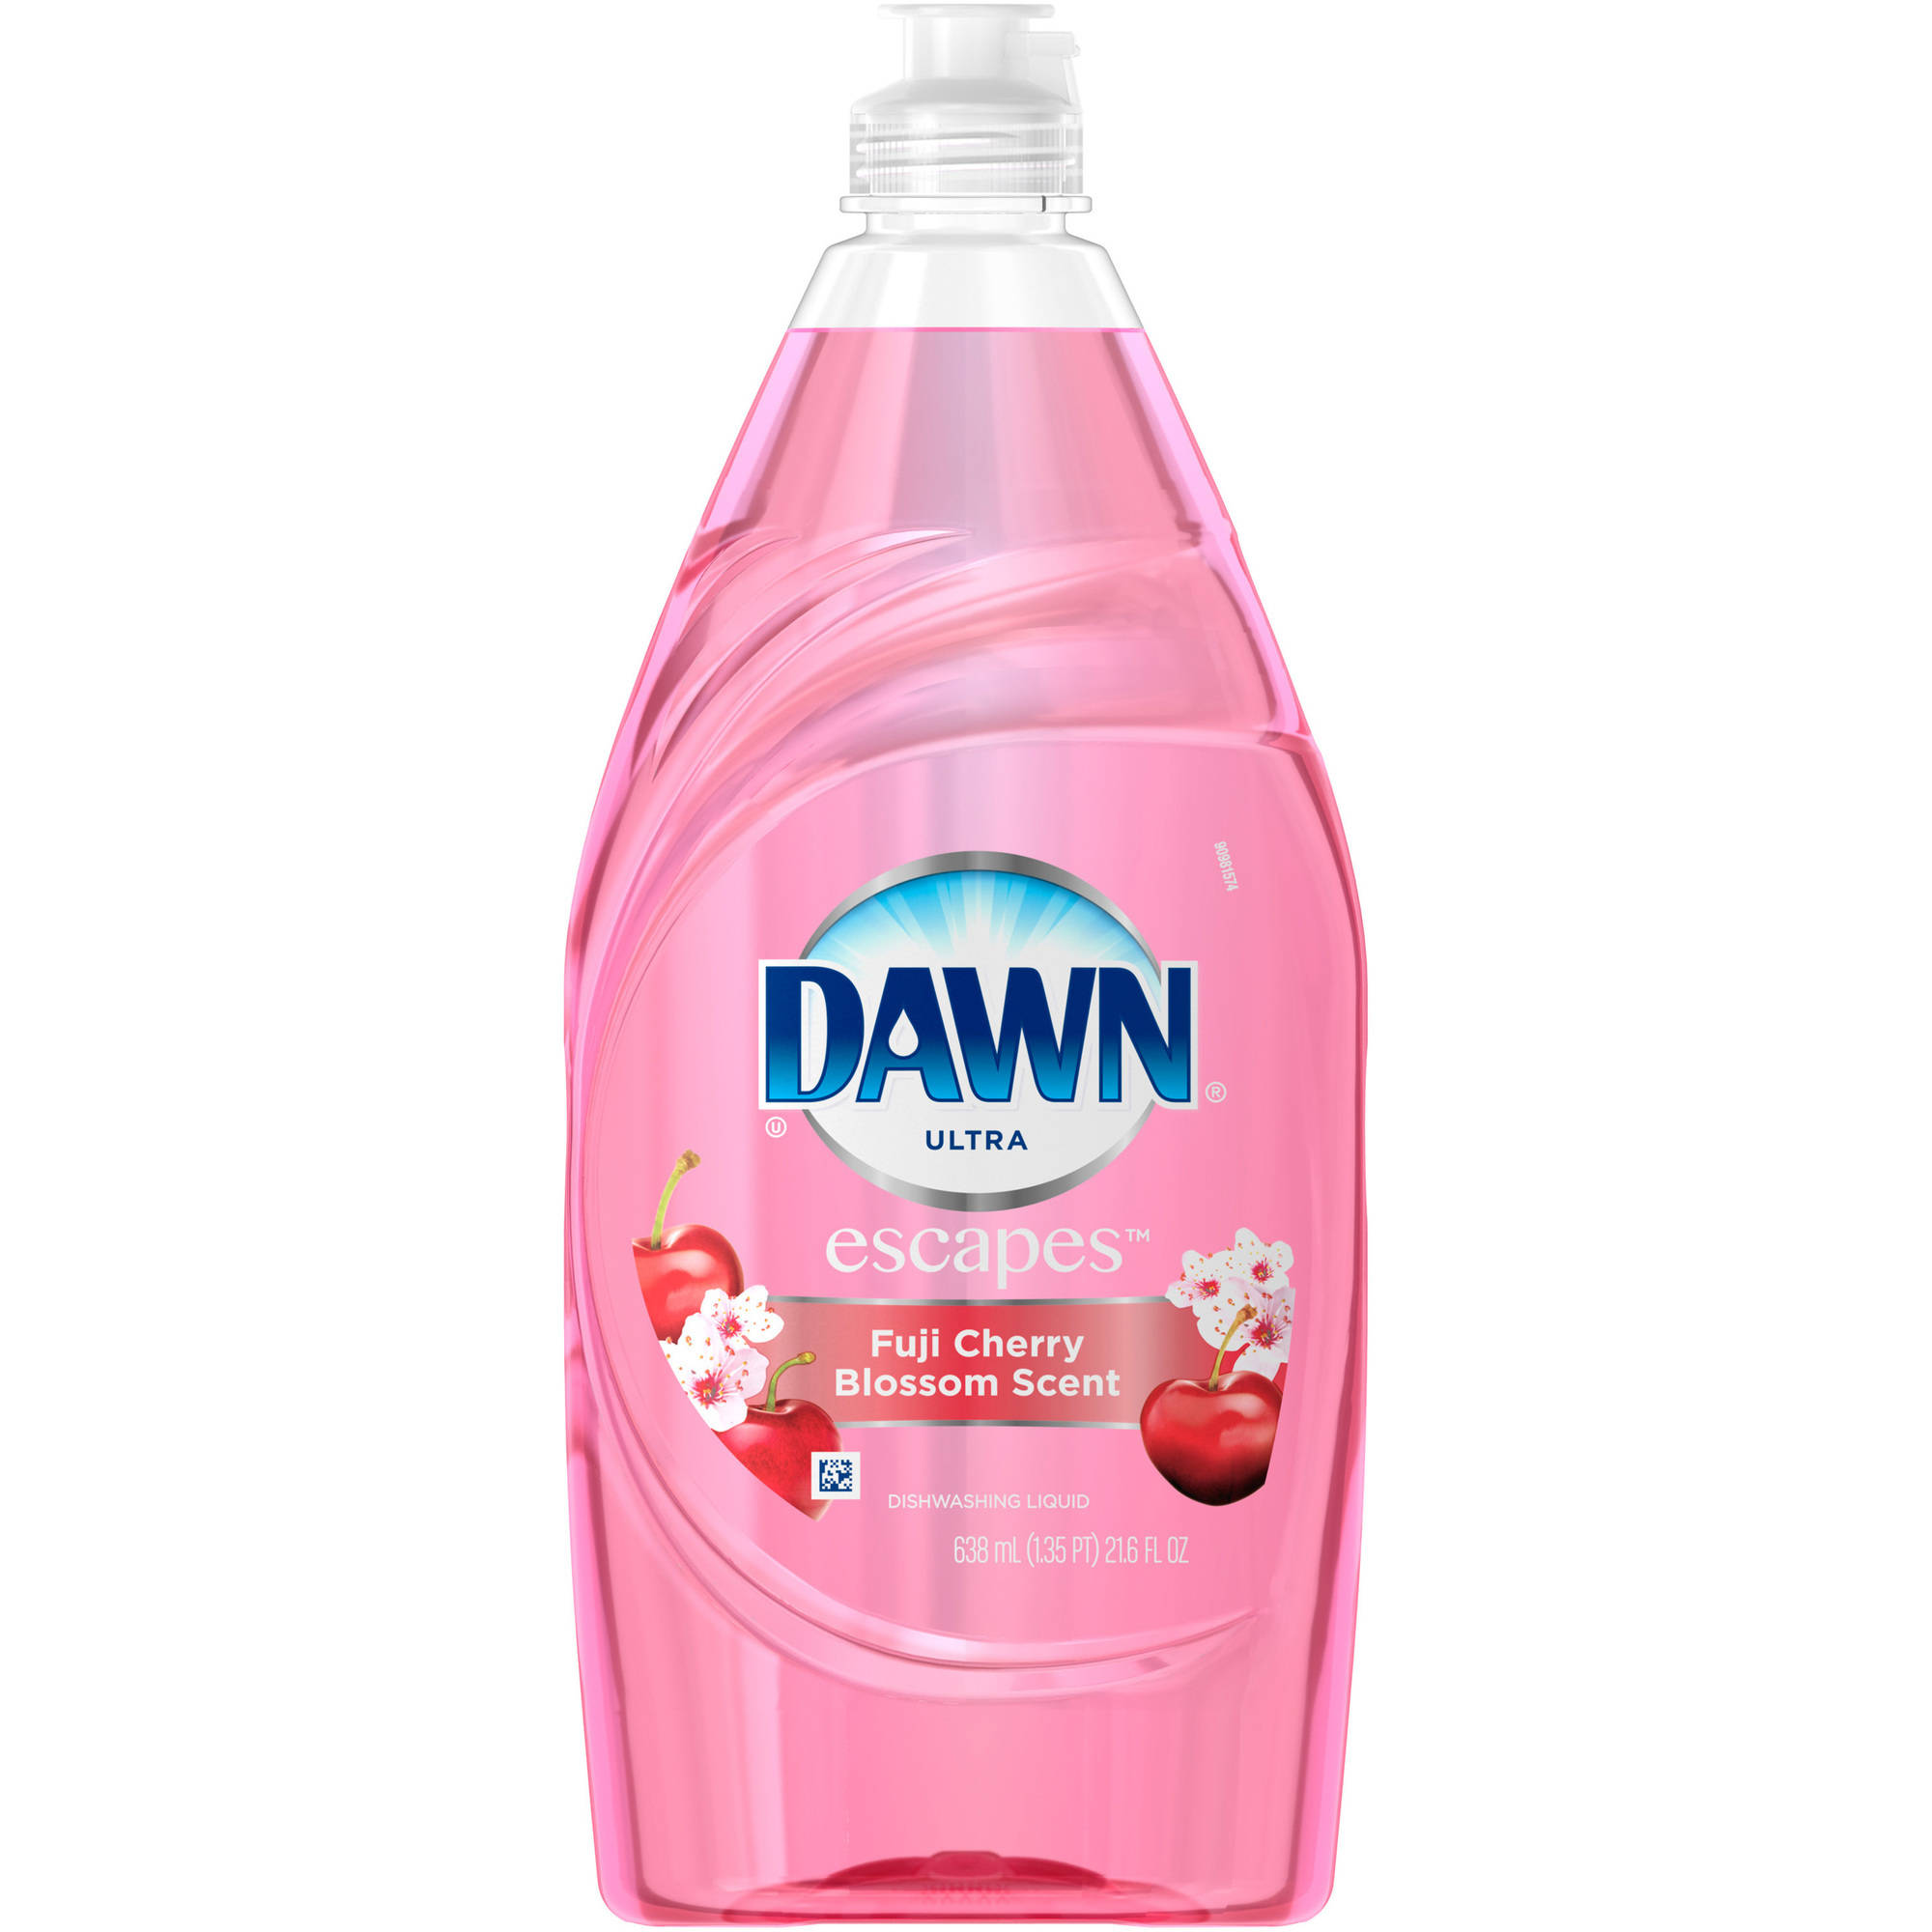 Dawn Escapes Fuji Cherry Blossom Dishwashing Liquid, 24 fl oz